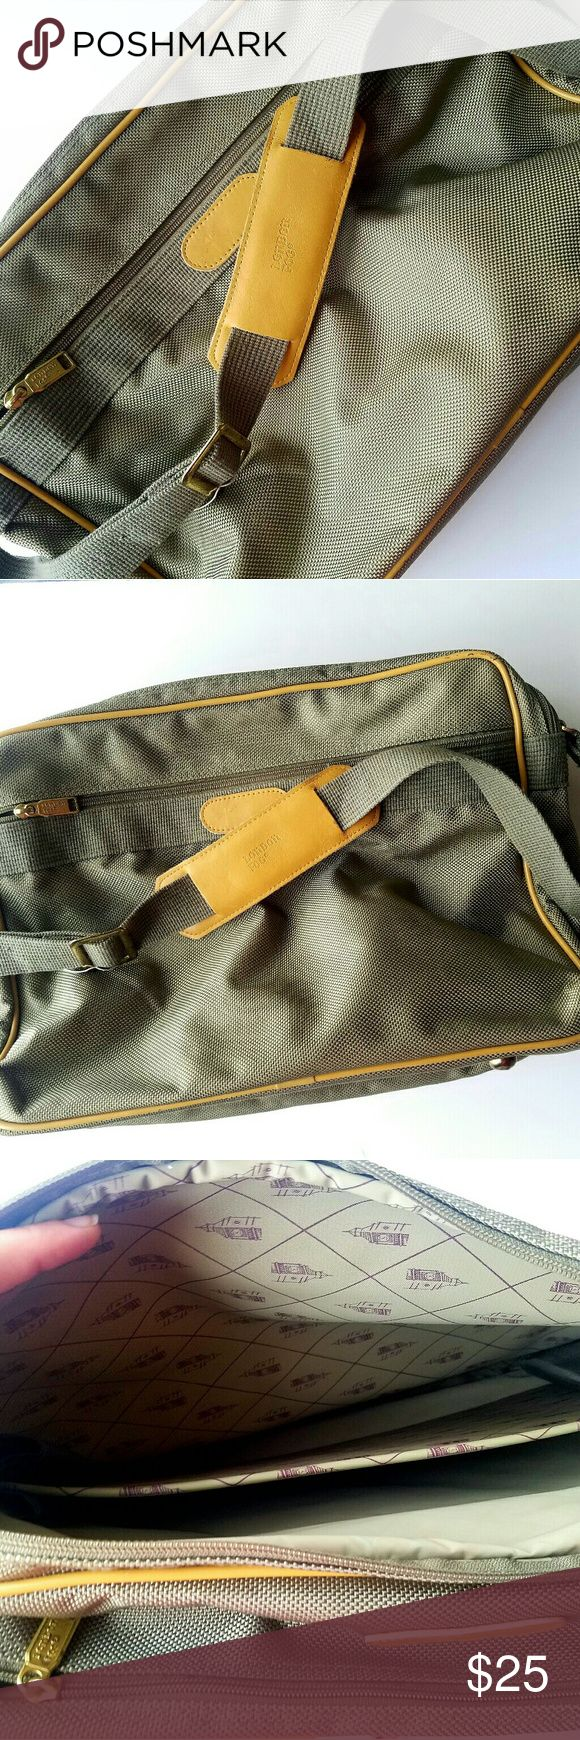 Vintage London Fog Laptop Carry Bag Excellent used condition. No flaws. Gold Accents. Olive Green Grayish Color. Light Brown Leather Accents. Adjustable Strap. London Fog Bags Laptop Bags